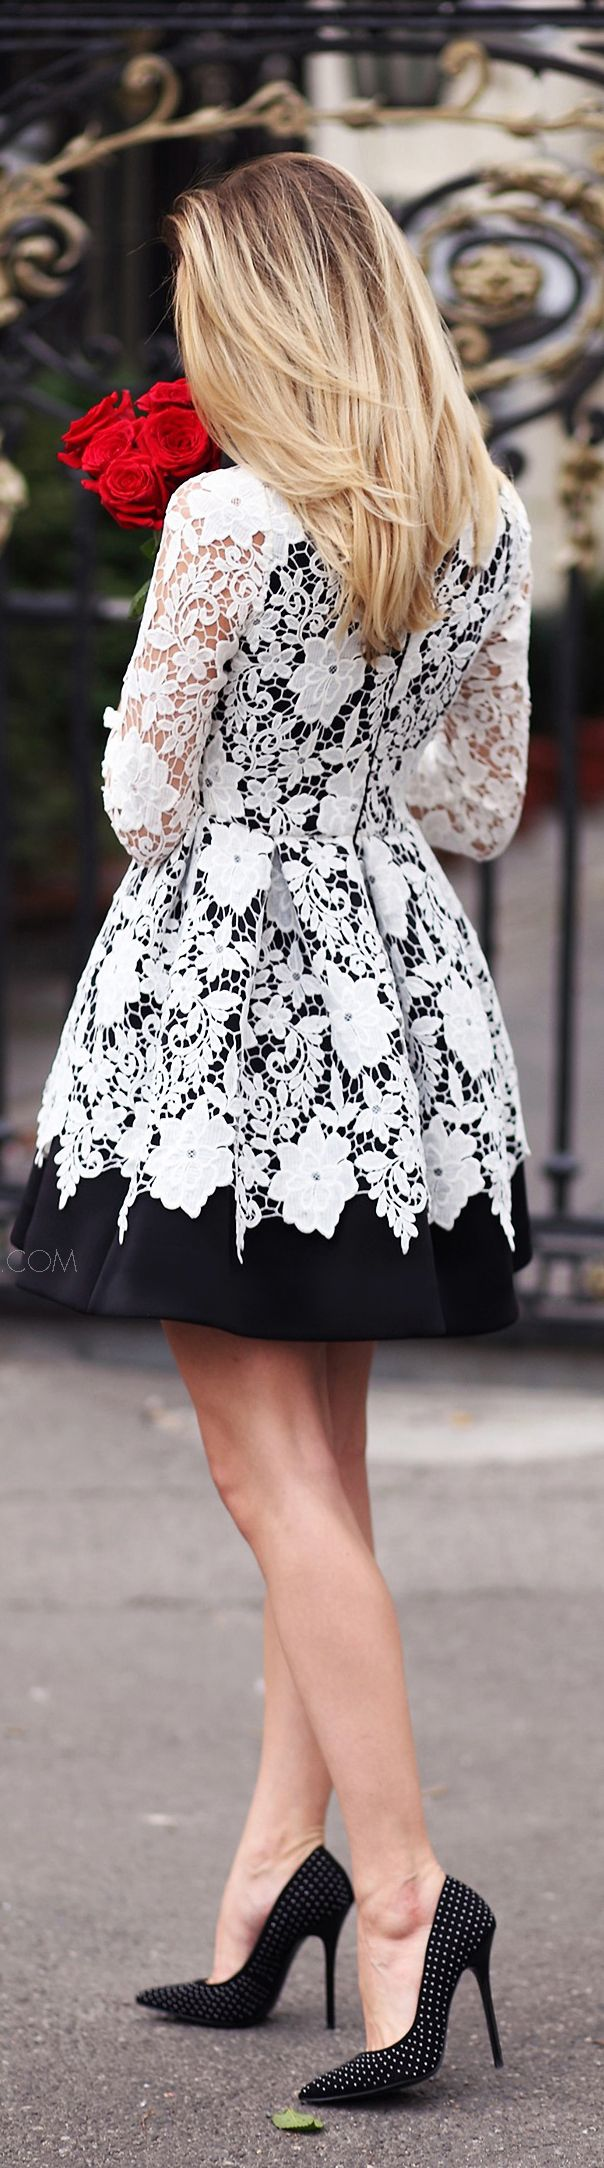 104 Best Jolie En Dentelle Images On Pinterest Lace Clothes And Clothing Joie Midi Dress Nude L 40 Amazing Street Fashion Ideas Worth Copying